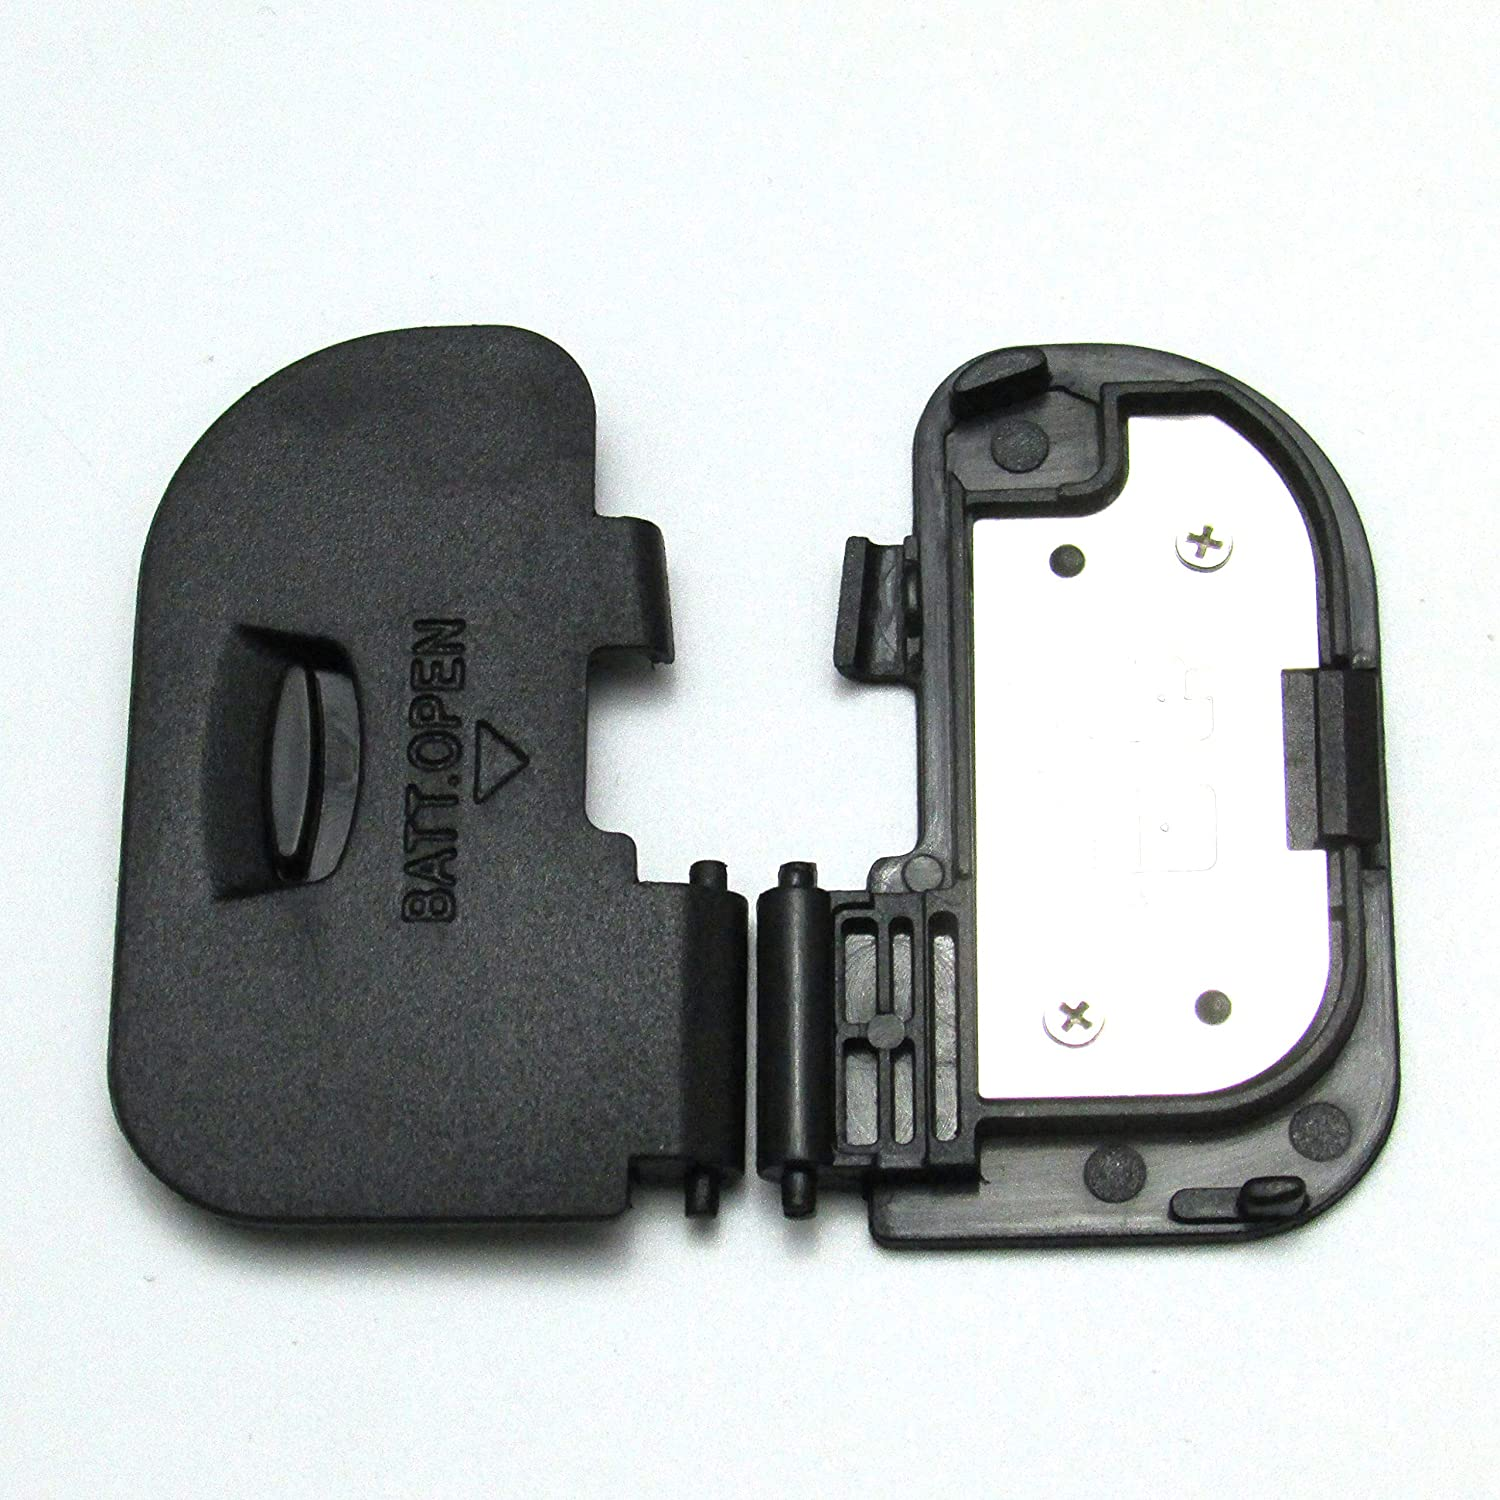 Shenligod Battery Door Cover Lid Cap Replacement Repair Part for Canon EOS 60D DSLR Camera (2PCS)